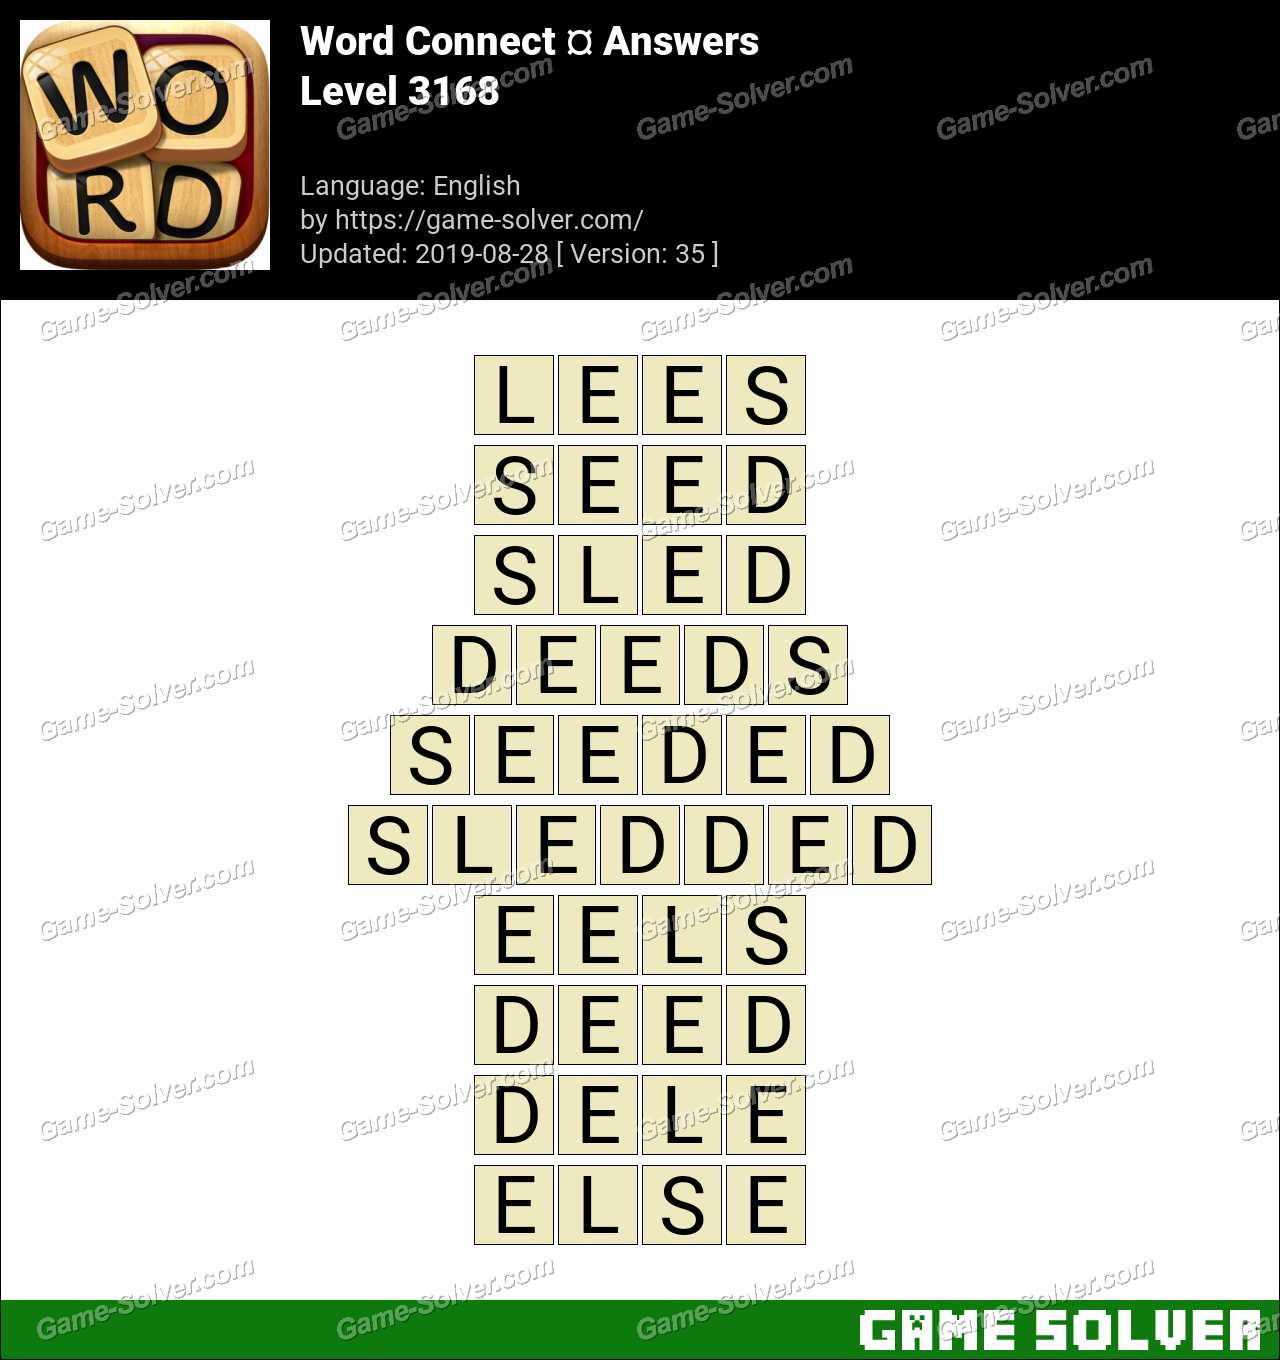 Word Connect Level 3168 Answers